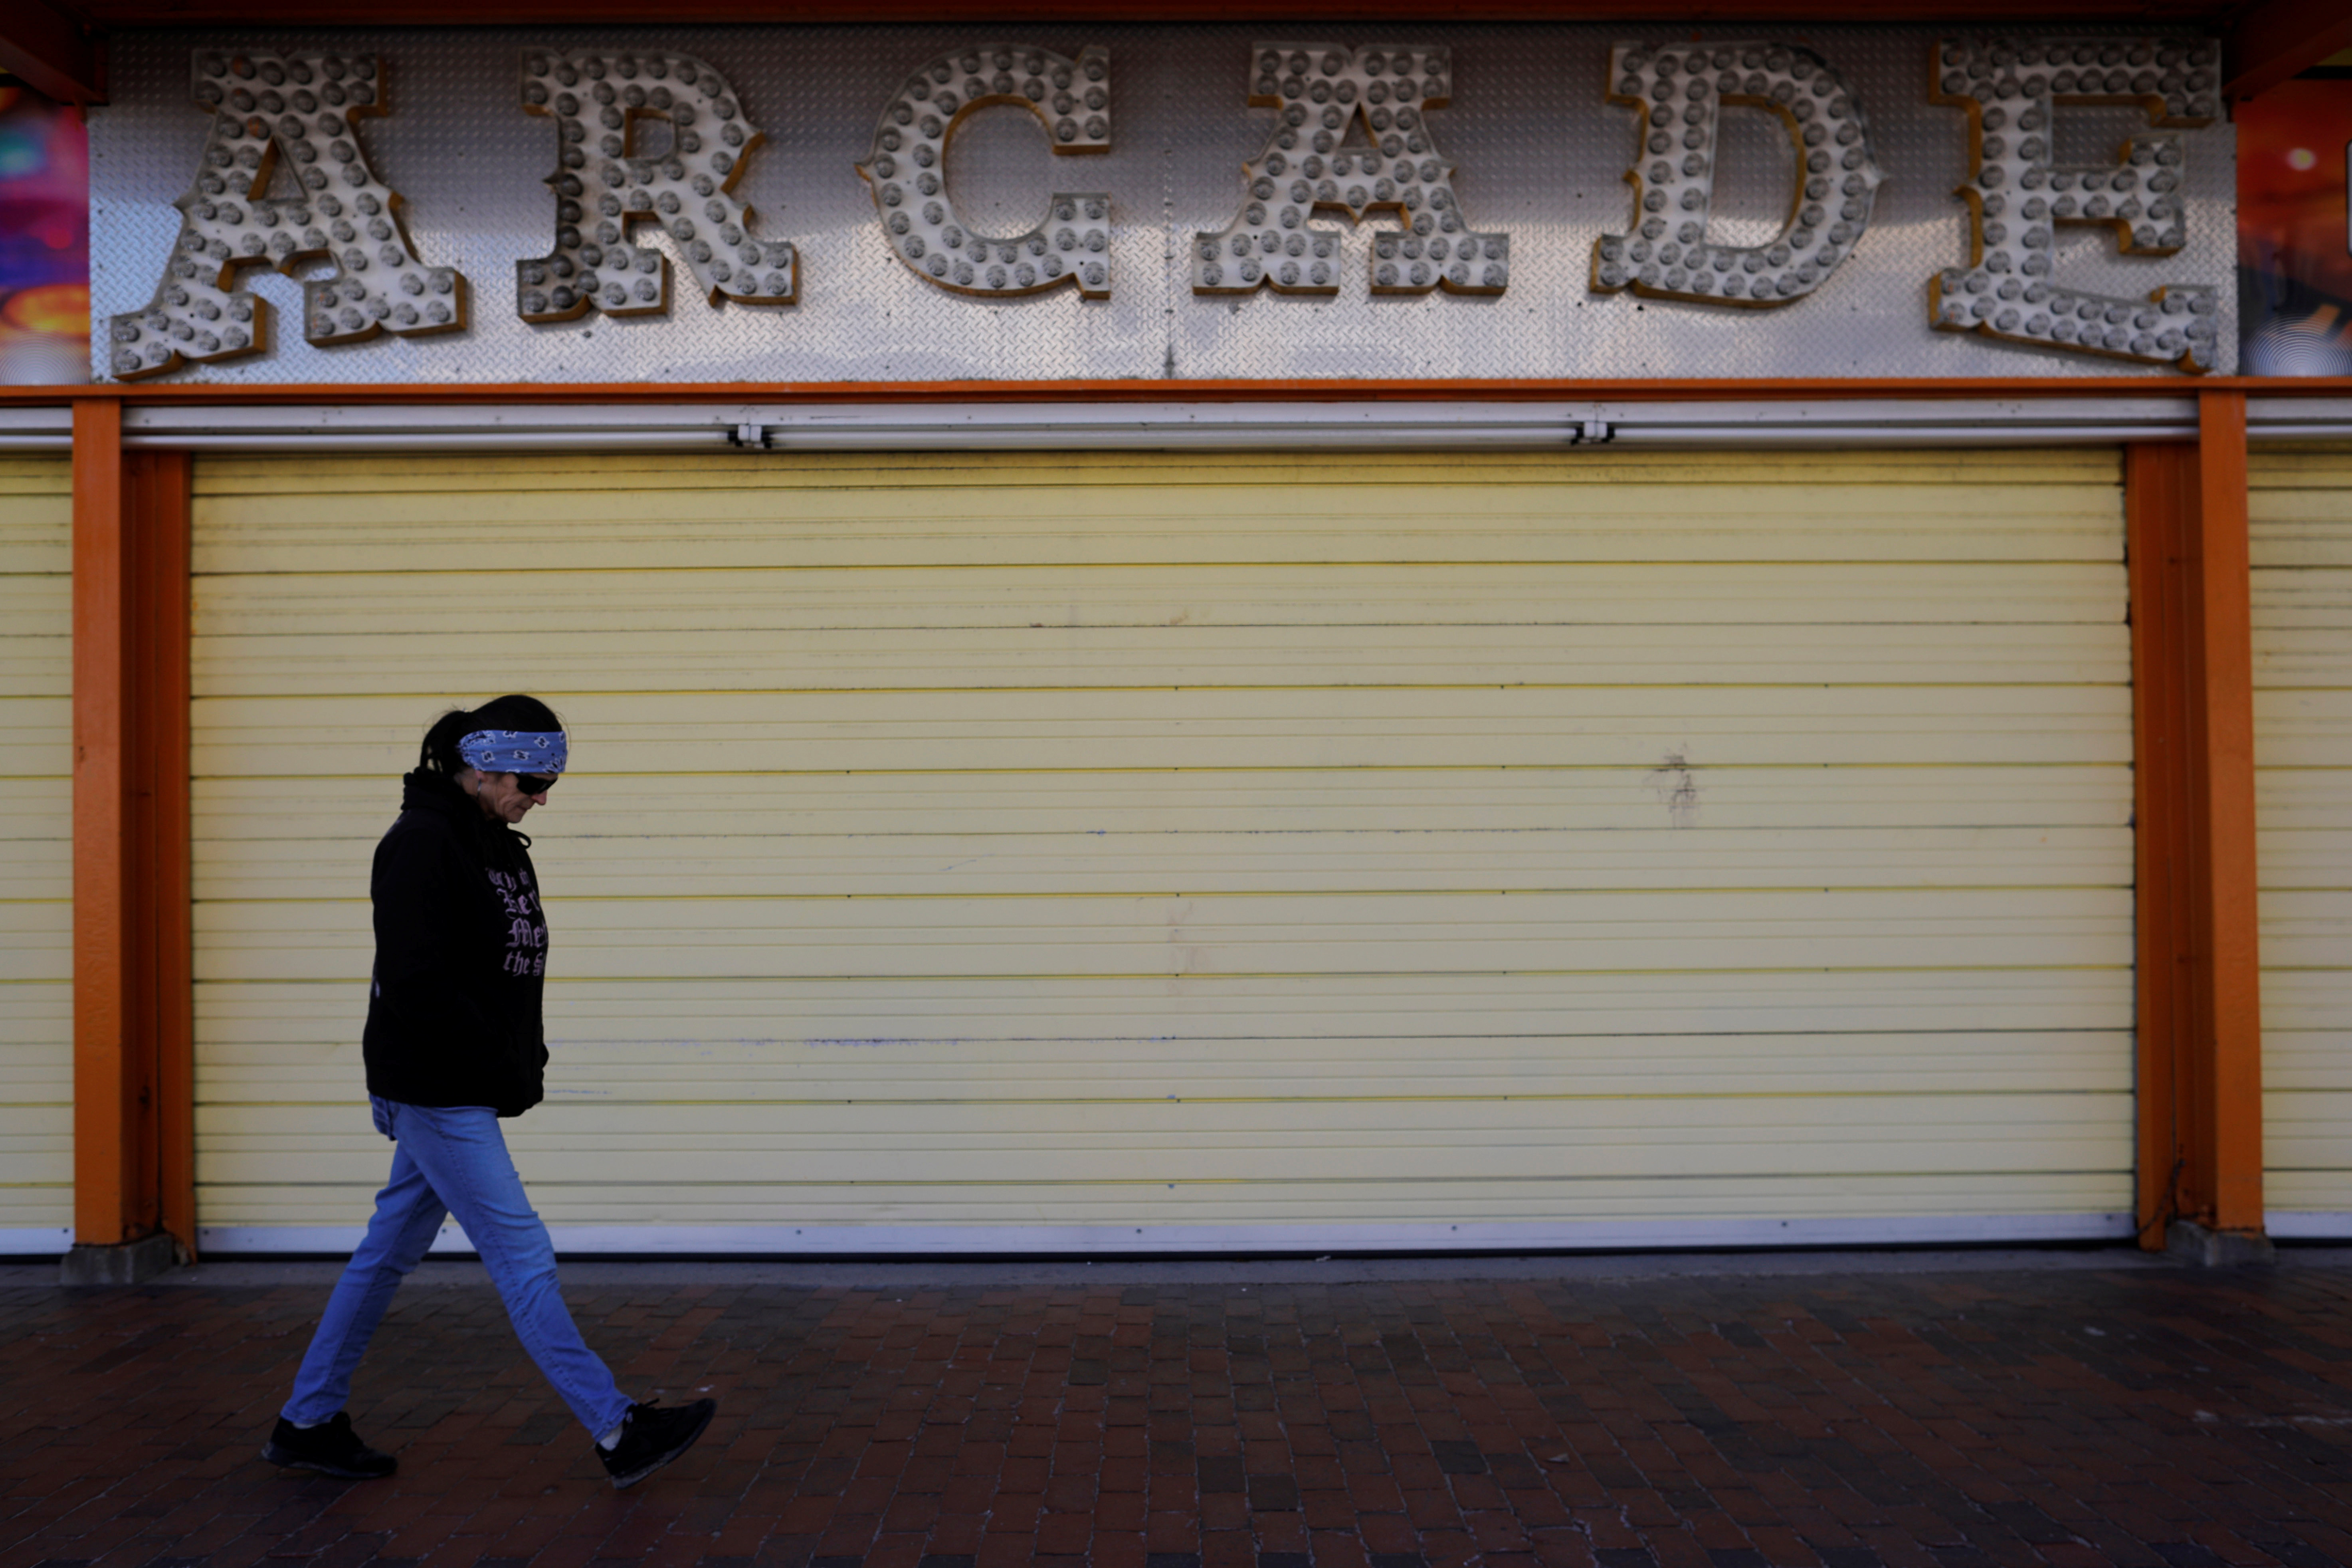 A woman walks past the arcade closed amid the coronavirus disease (COVID-19) outbreak in Old Orchard Beach, Maine, U.S., April 25, 2020. REUTERS/Brian Snyder